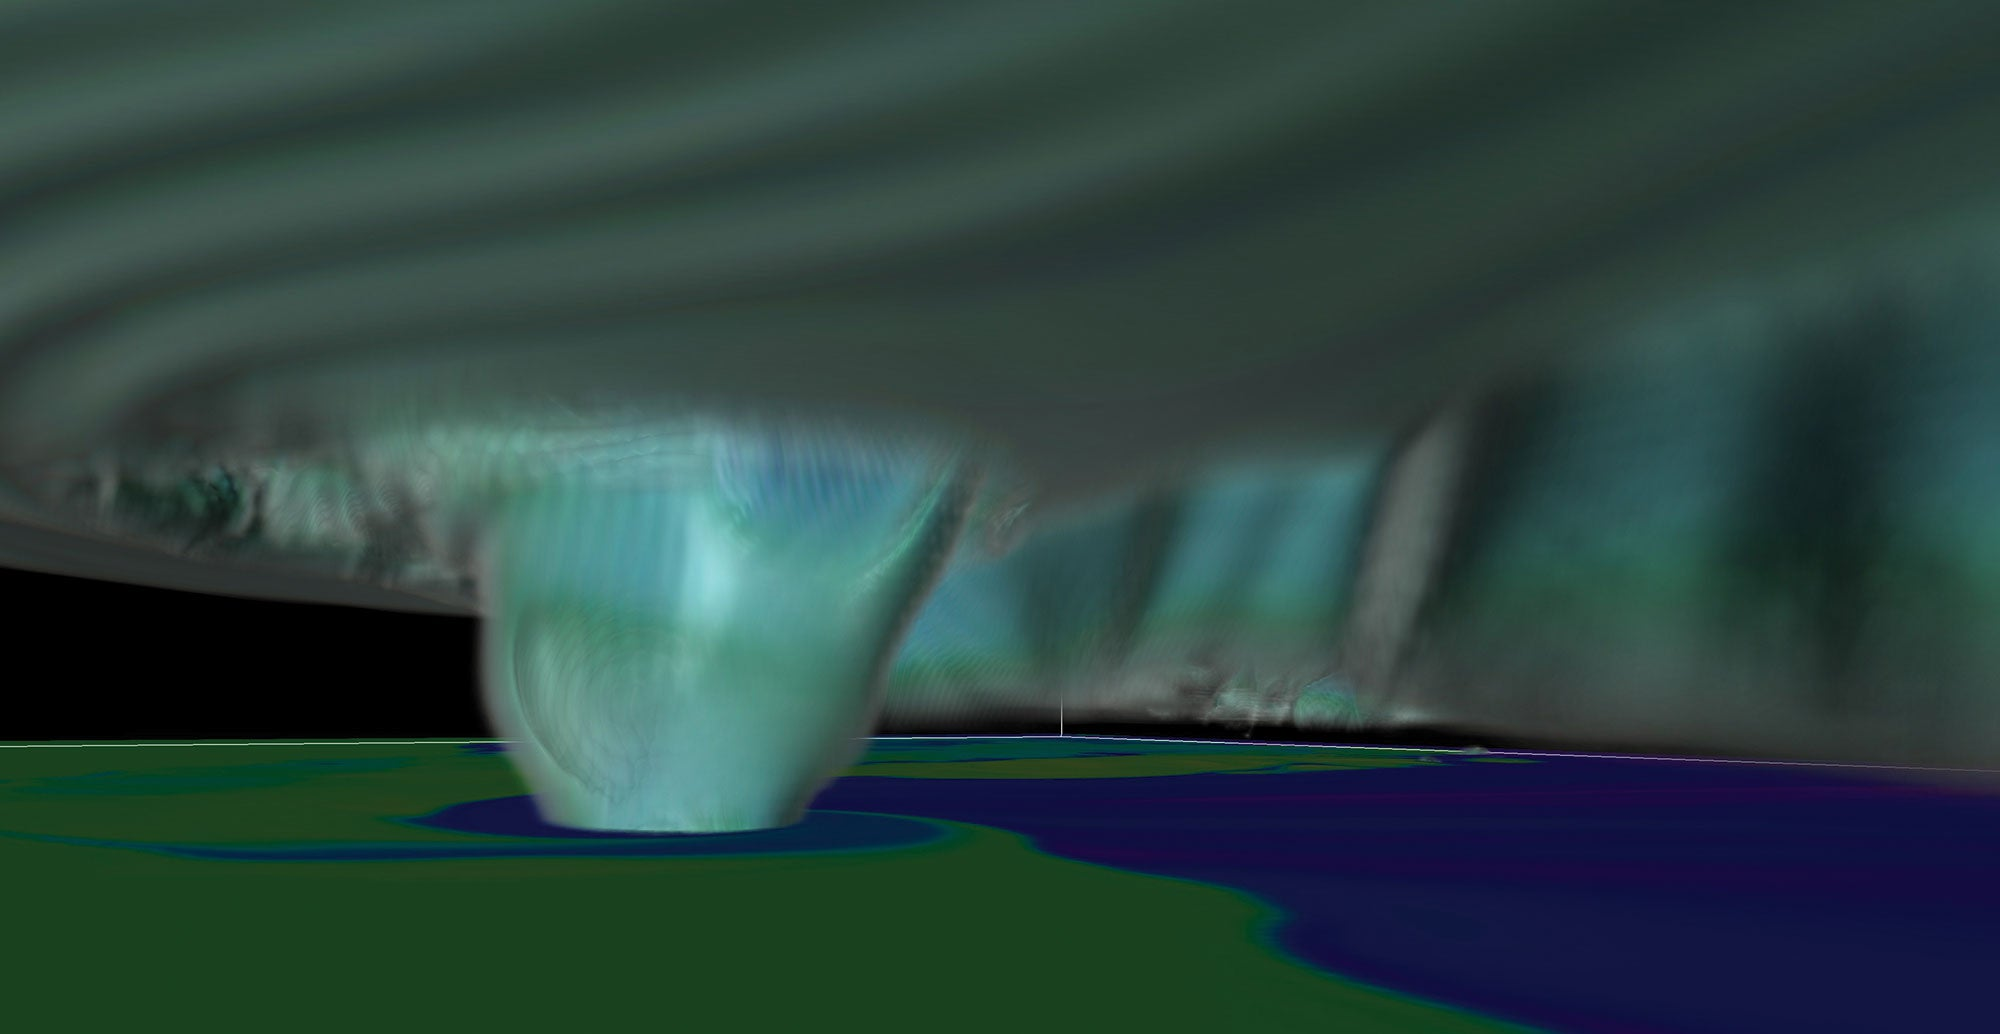 How scientists modeled a deadly tornado with an insanely powerful computer